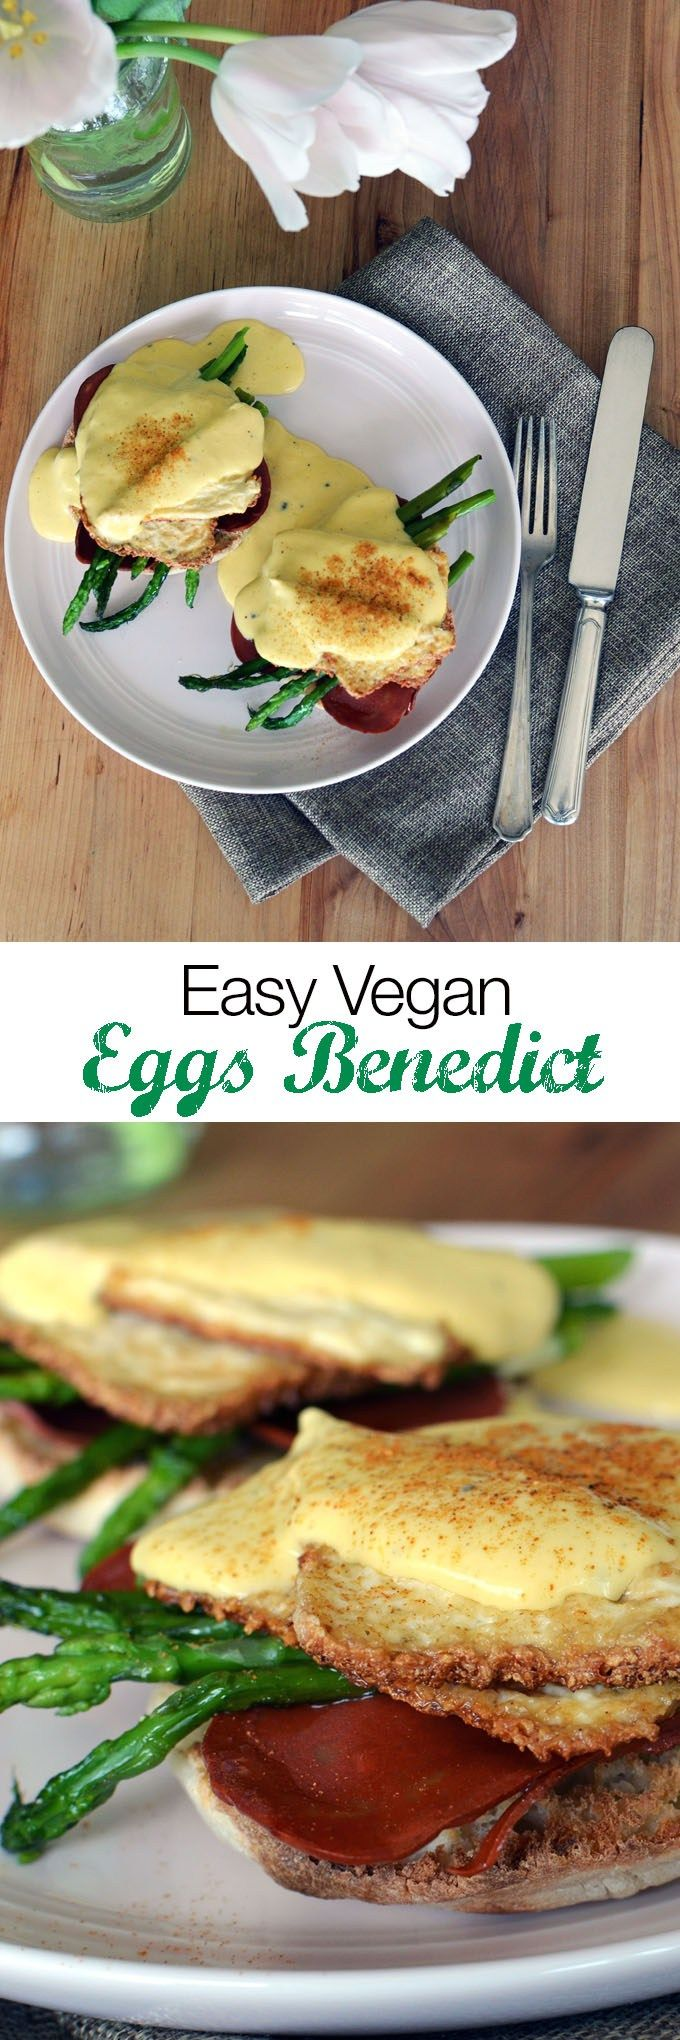 Vegan Eggs Benedict Recipe  Vegan Eggs Benedict is a dish that is almost impossible to come by. In this recipe you make dairy and egg free eggs benedict at home using egg replacer and some tofu!